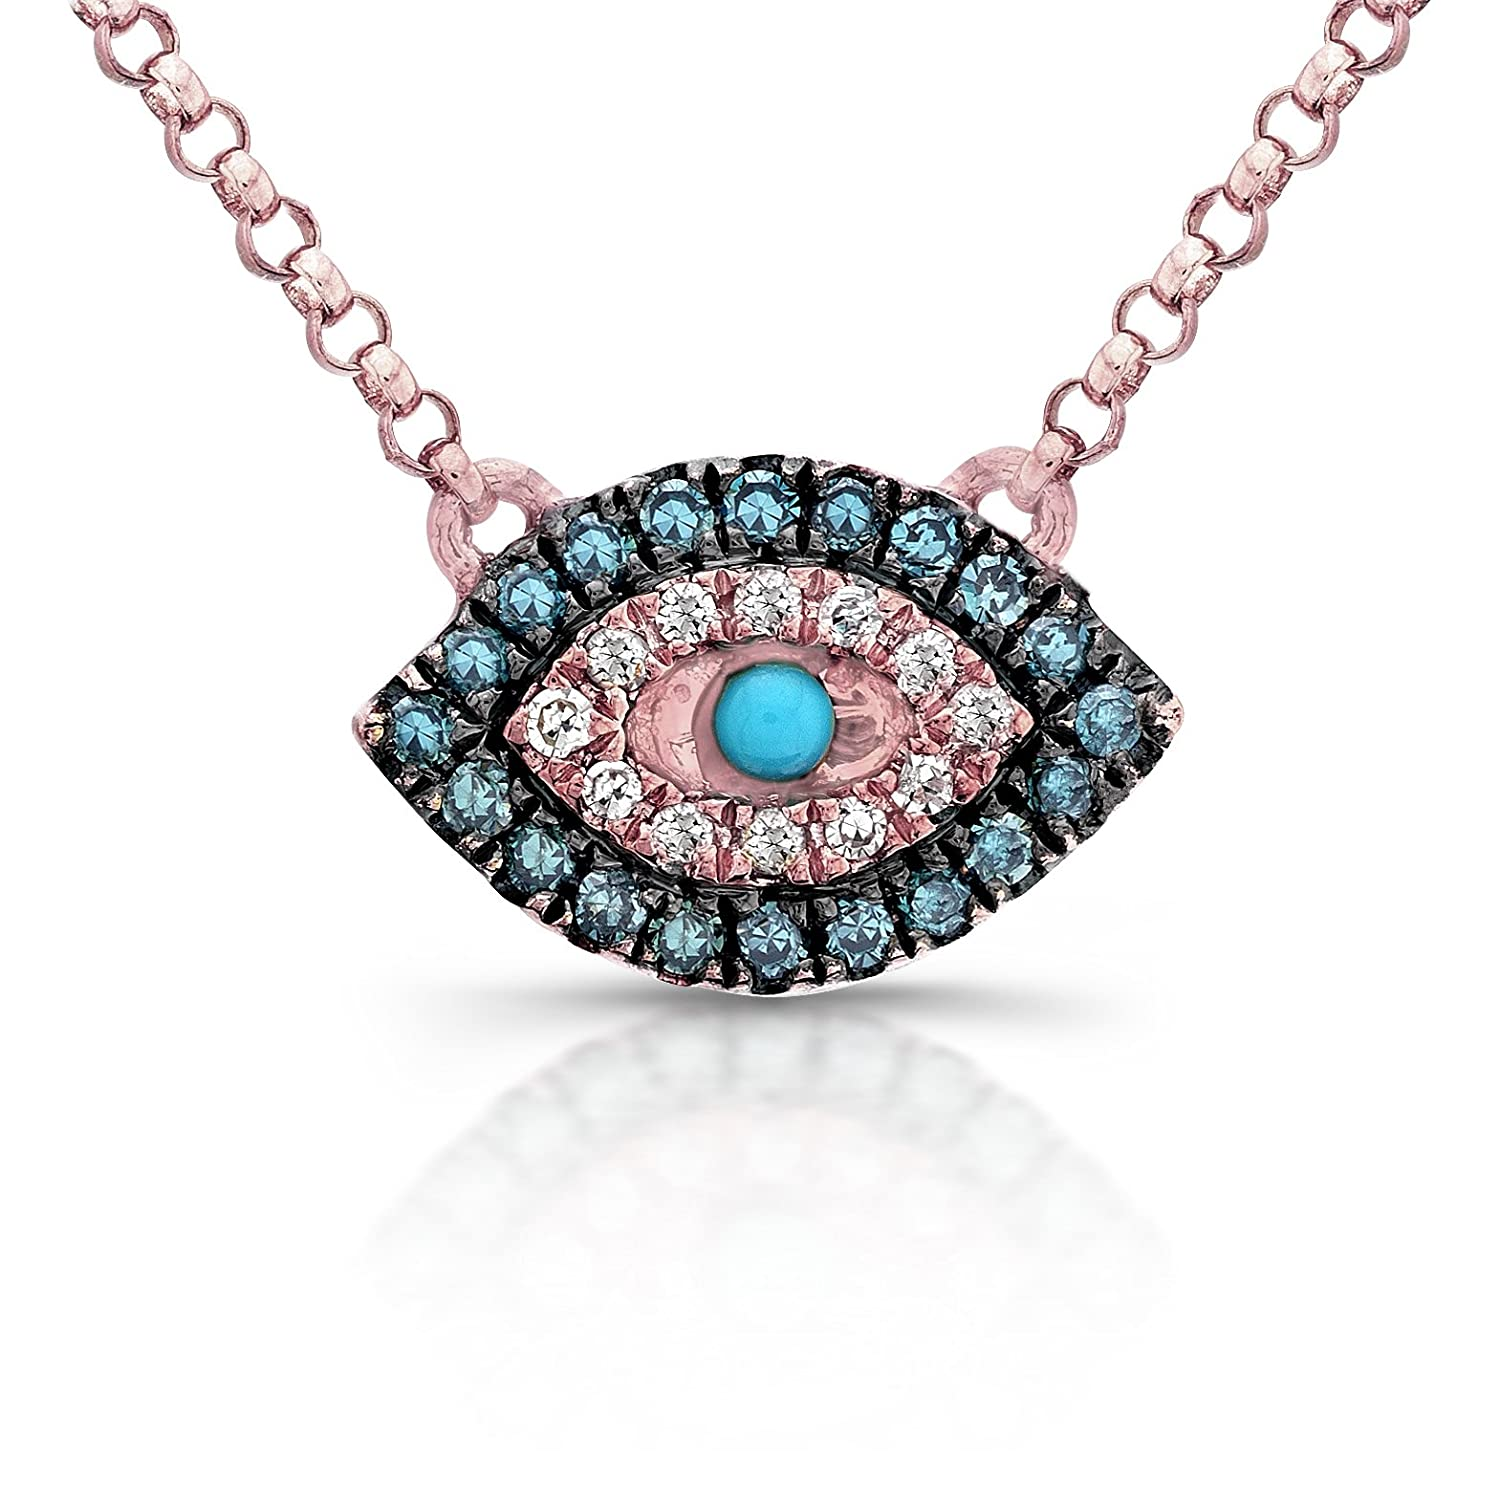 pendant evil mini biography clarke eye products astley necklace